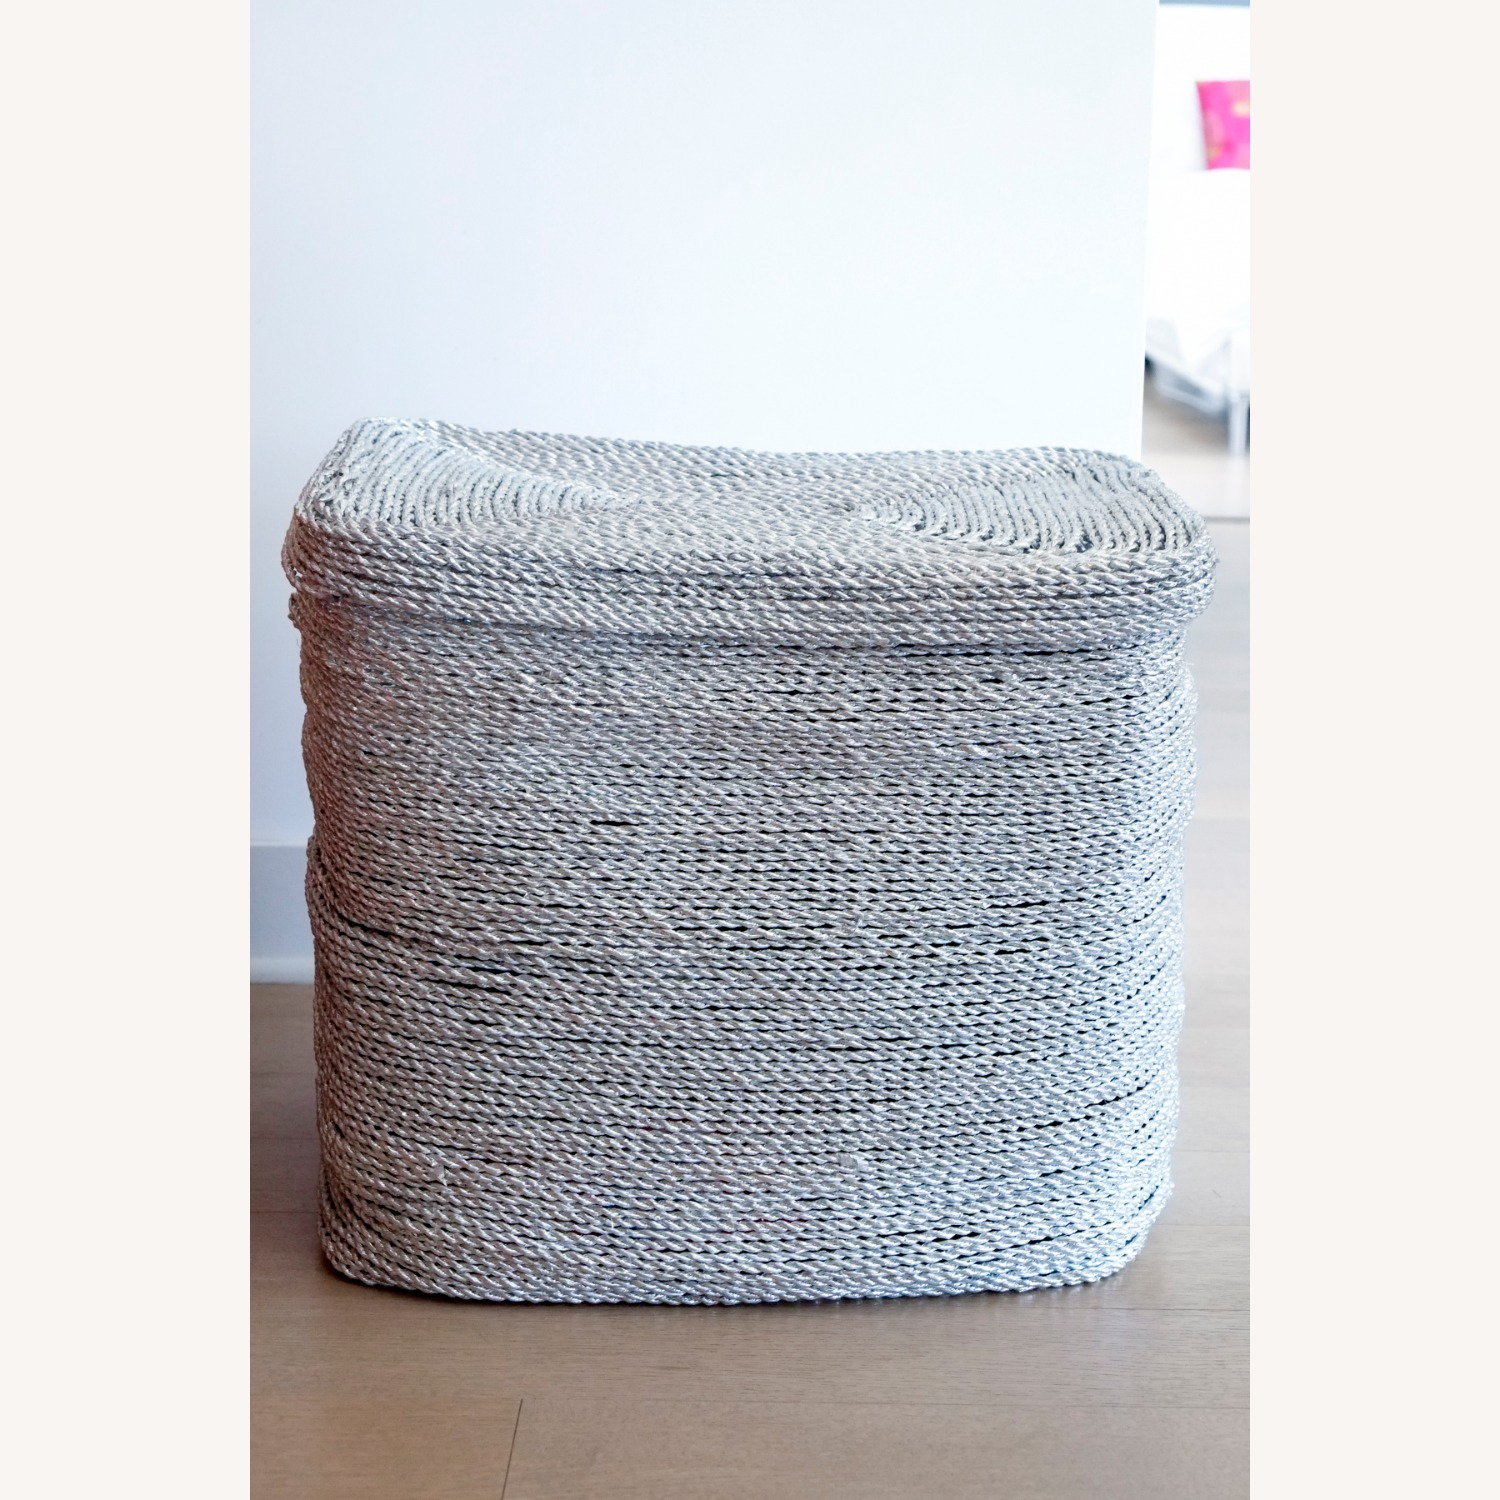 West Elm Metallic Silver Woven Hamper - image-2